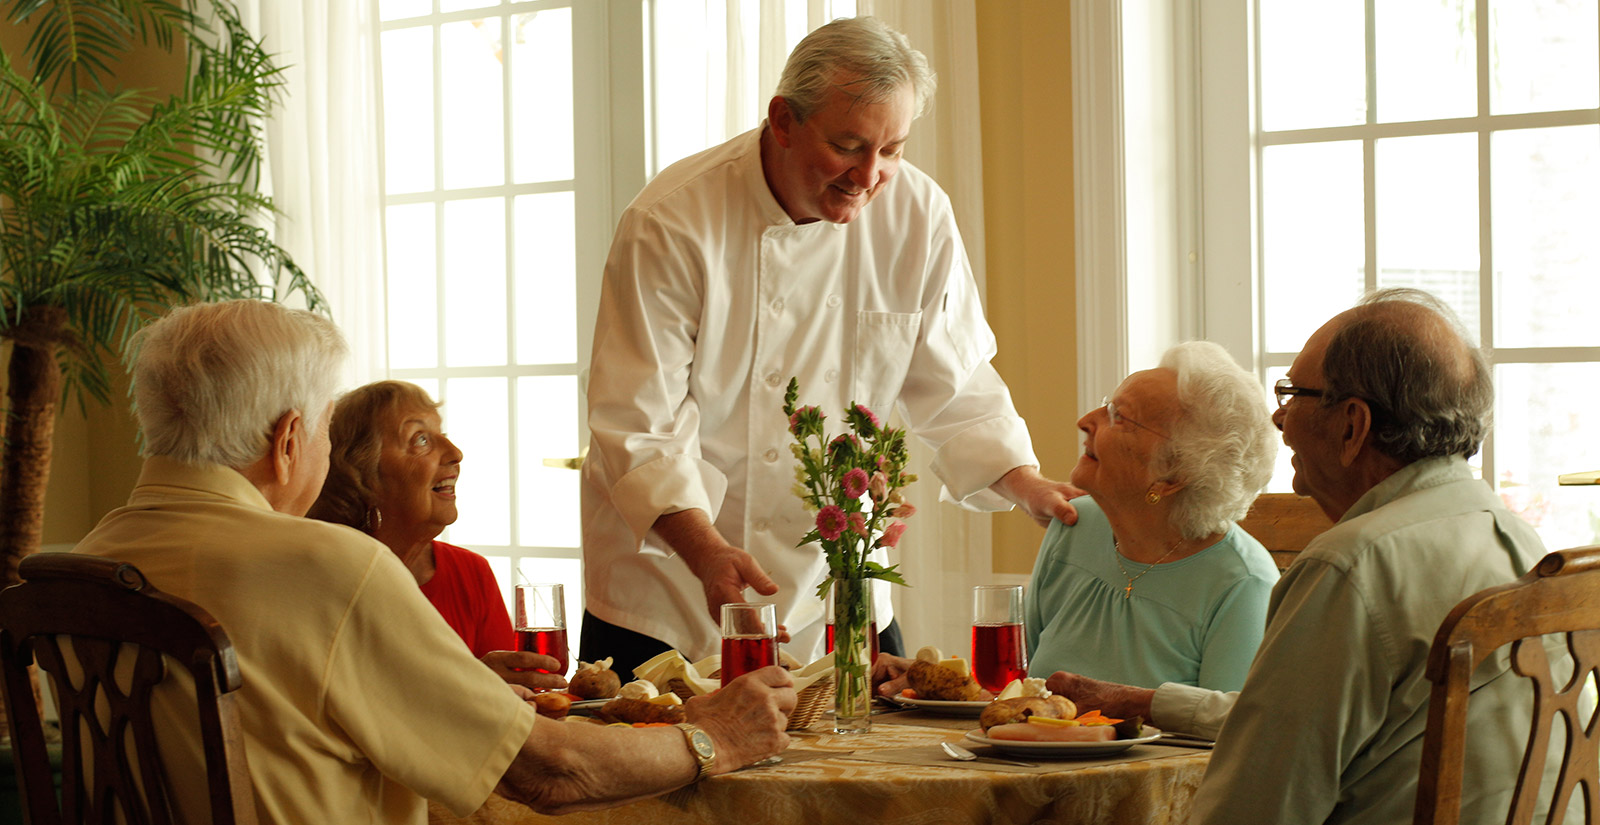 Assisted living dining service in tequesta fl